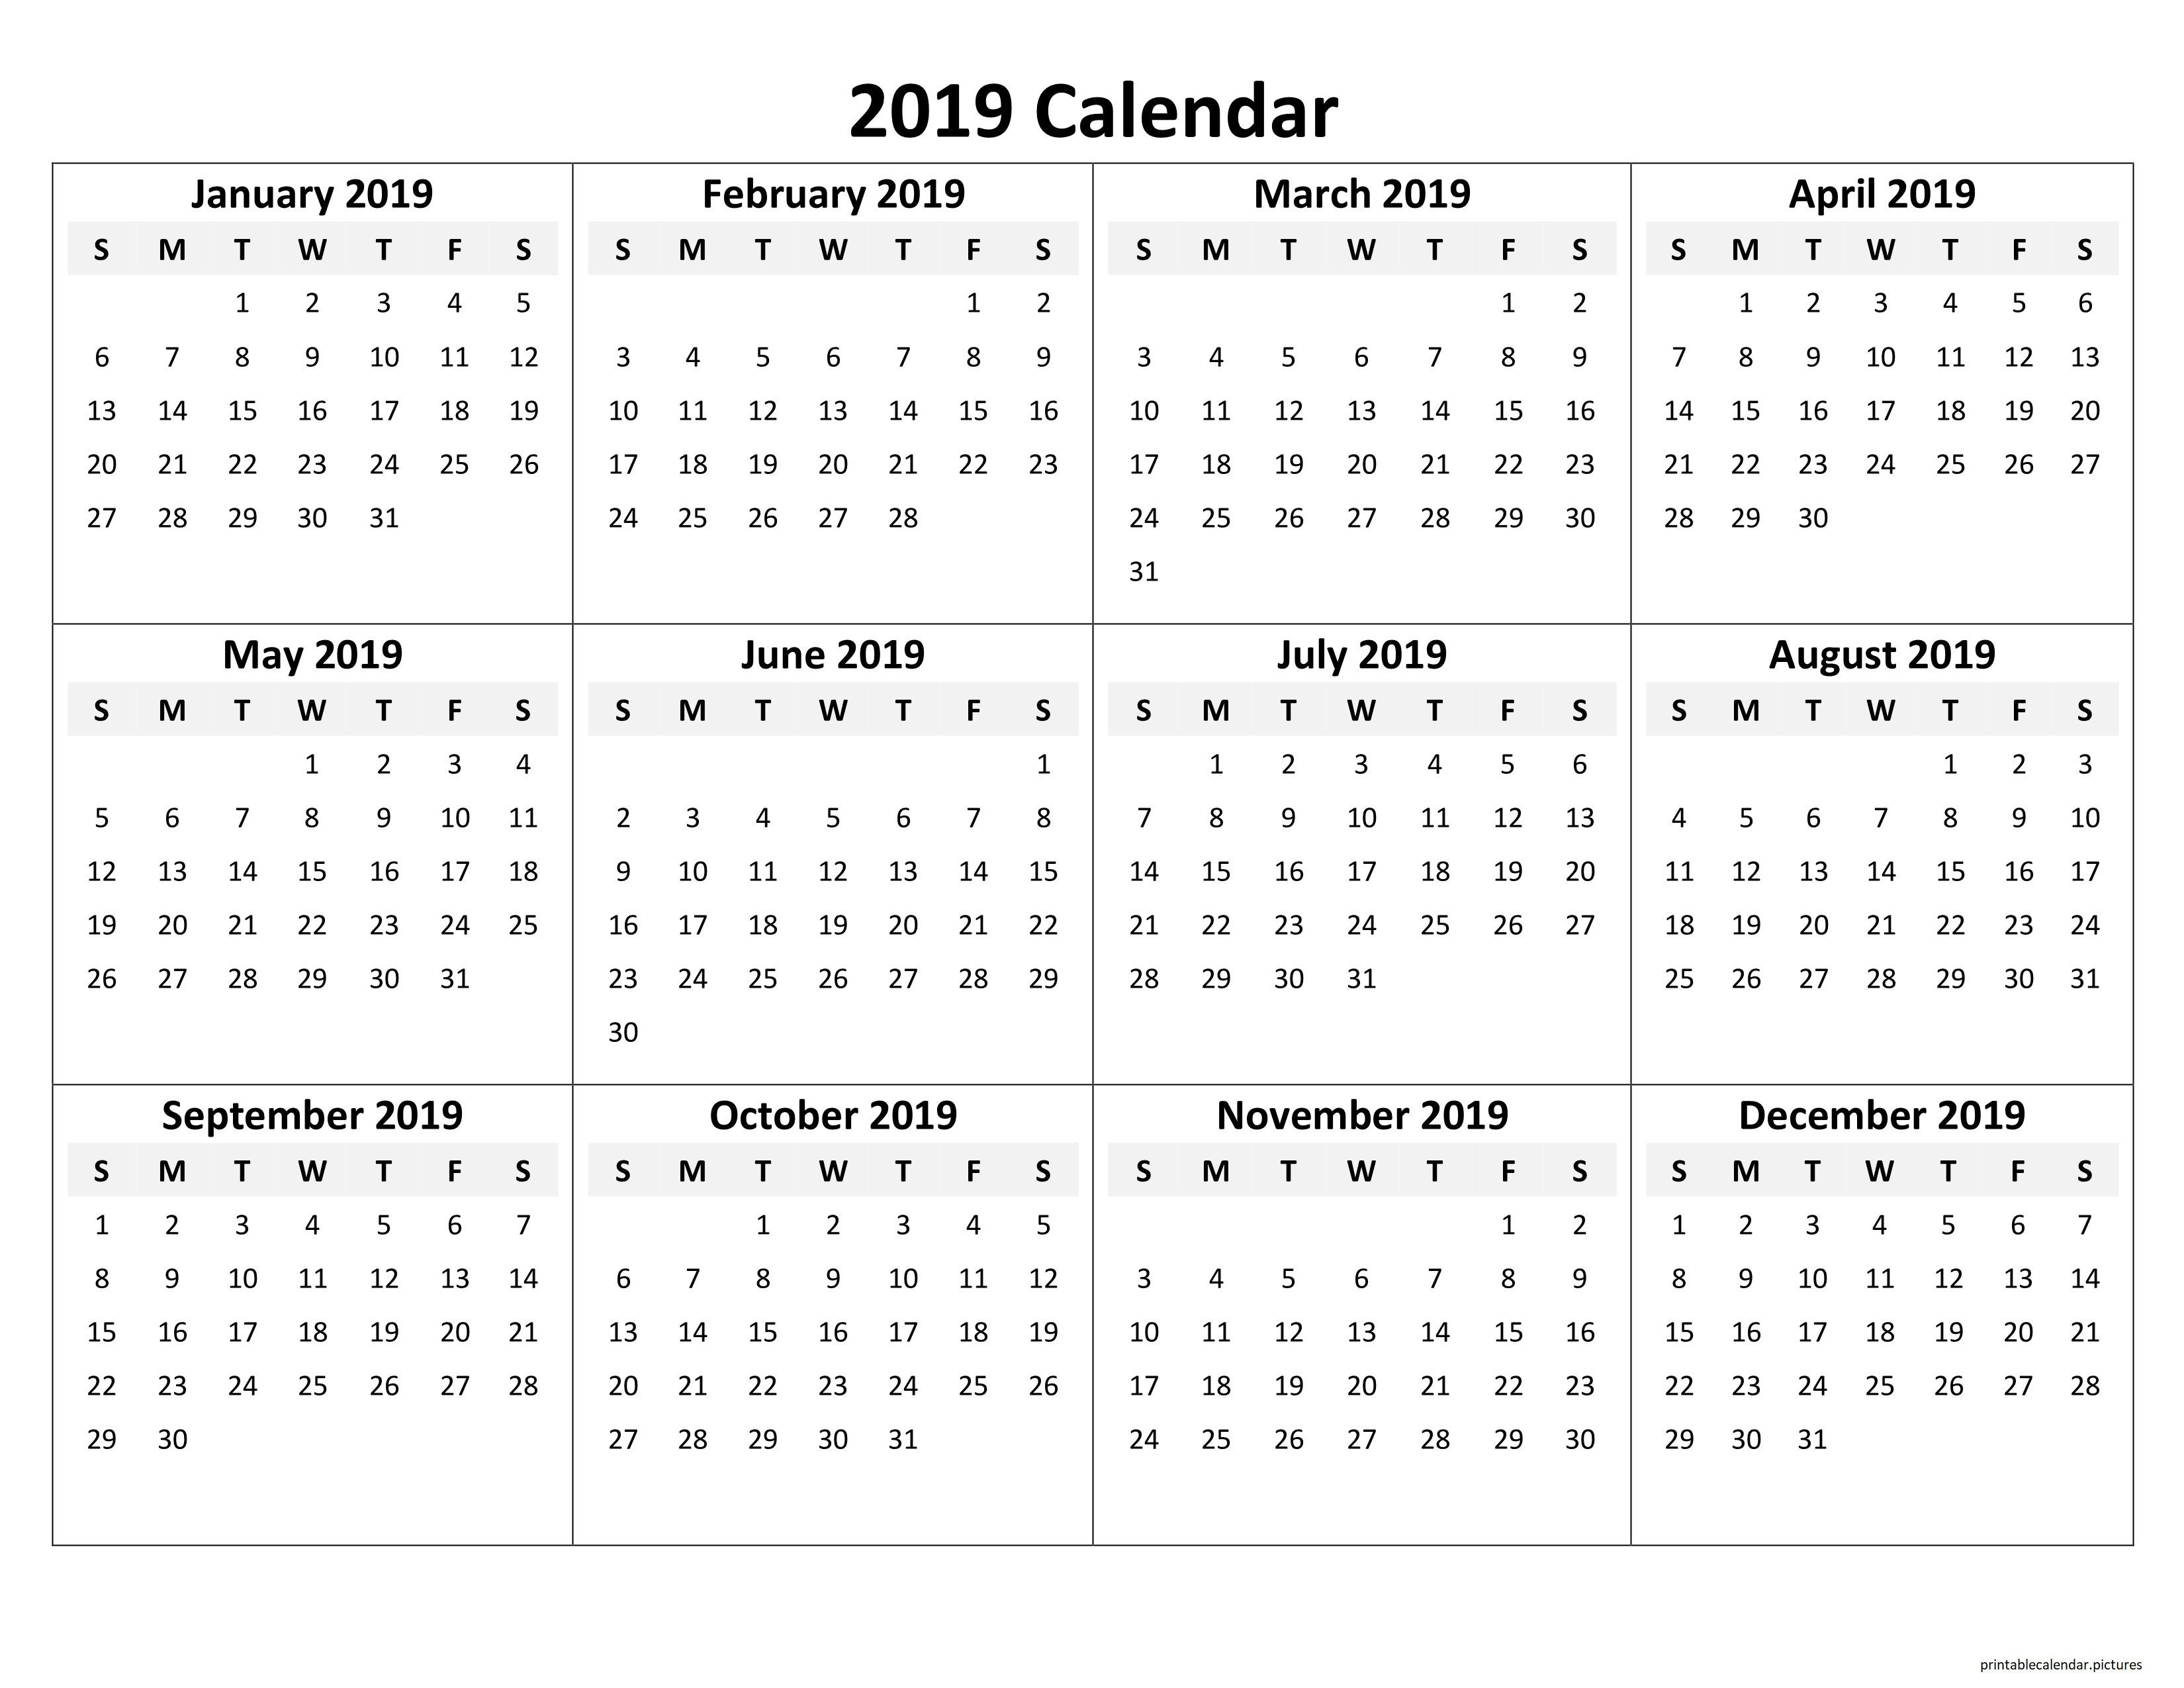 Printable Yearly Calendar 2019 | Printable Calendar 2019 | Blank Calendar 2019 Year Printable